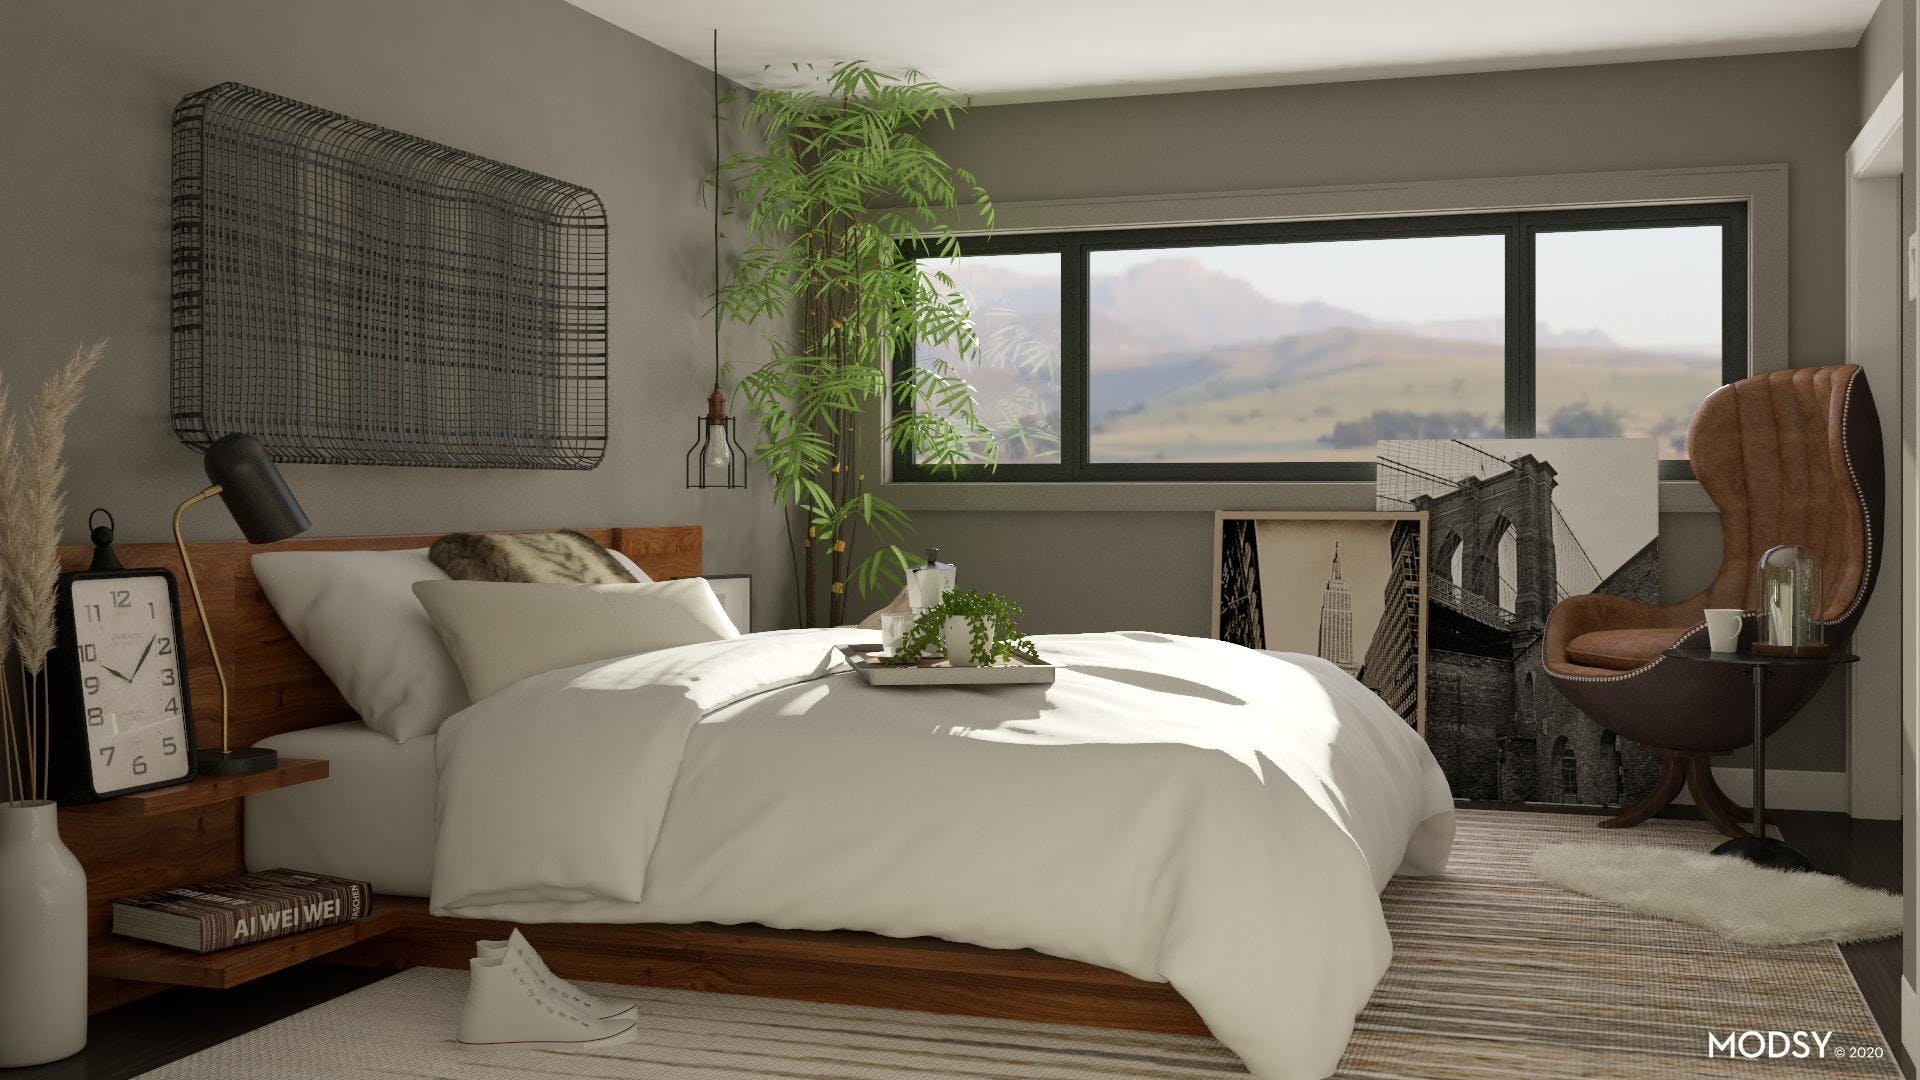 A Neutral Industrial Bedroom